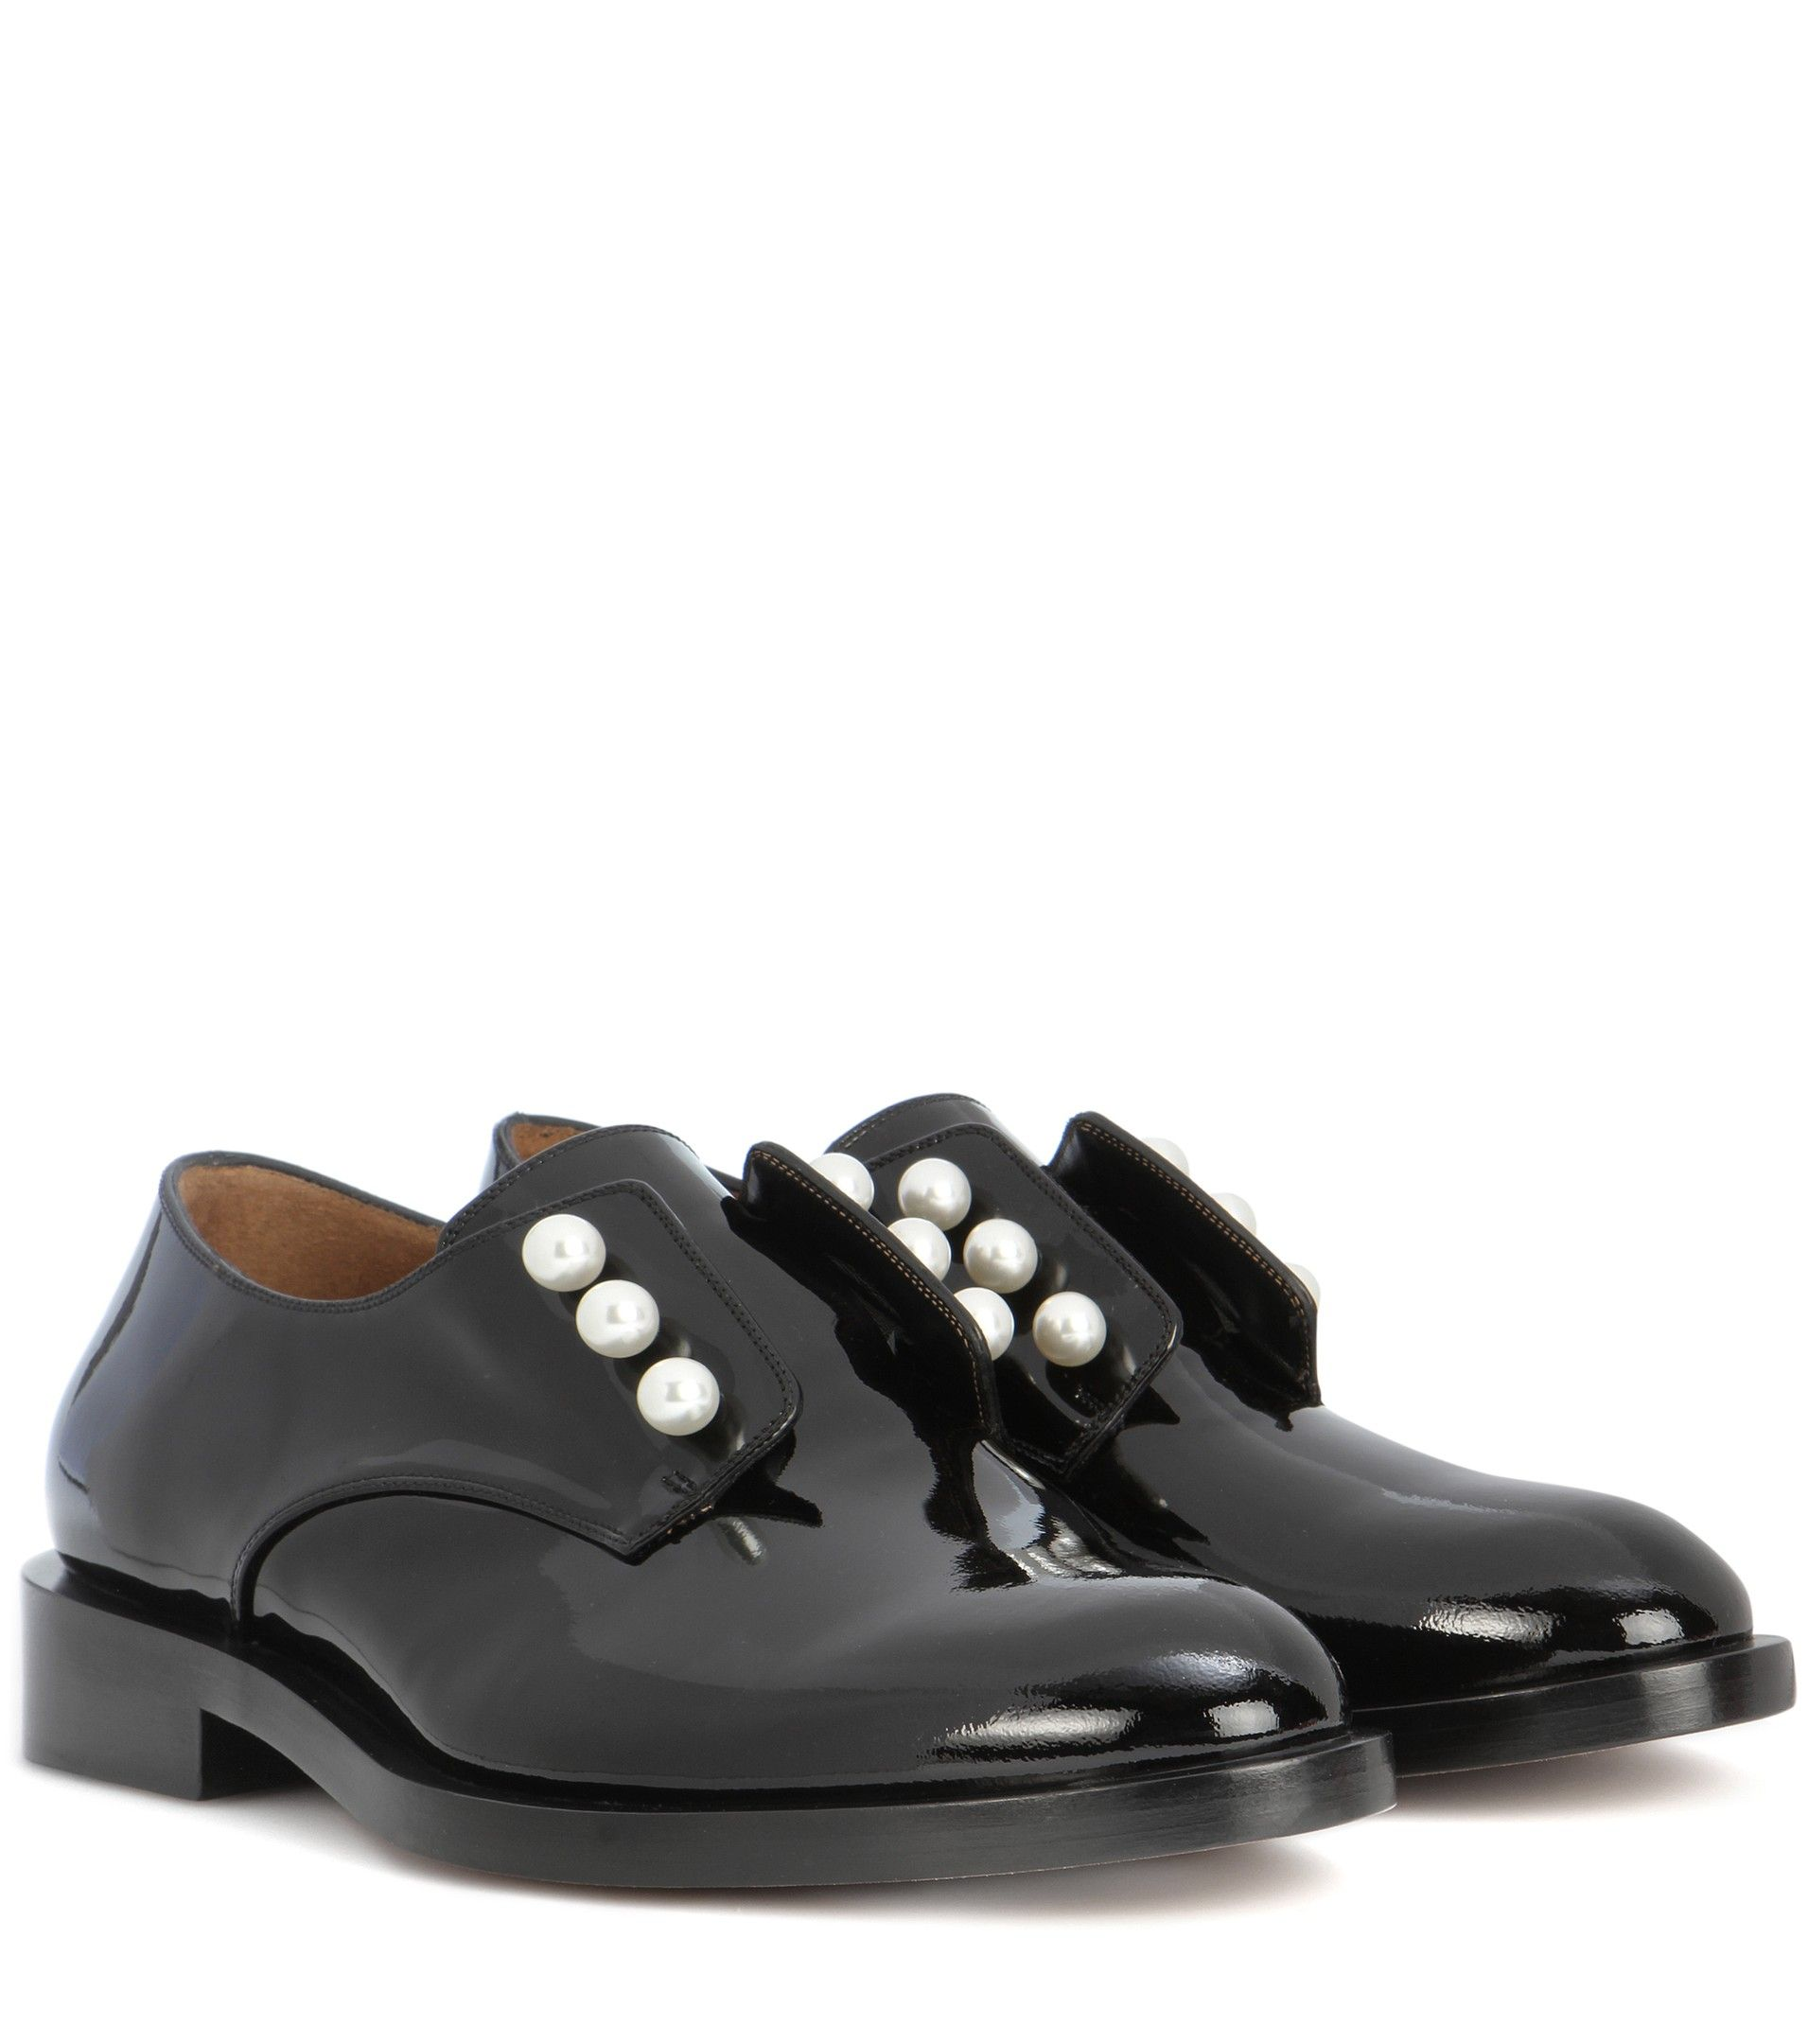 Buy Nice Shoes Women Masculine Pearls patent leather derby shoes Black